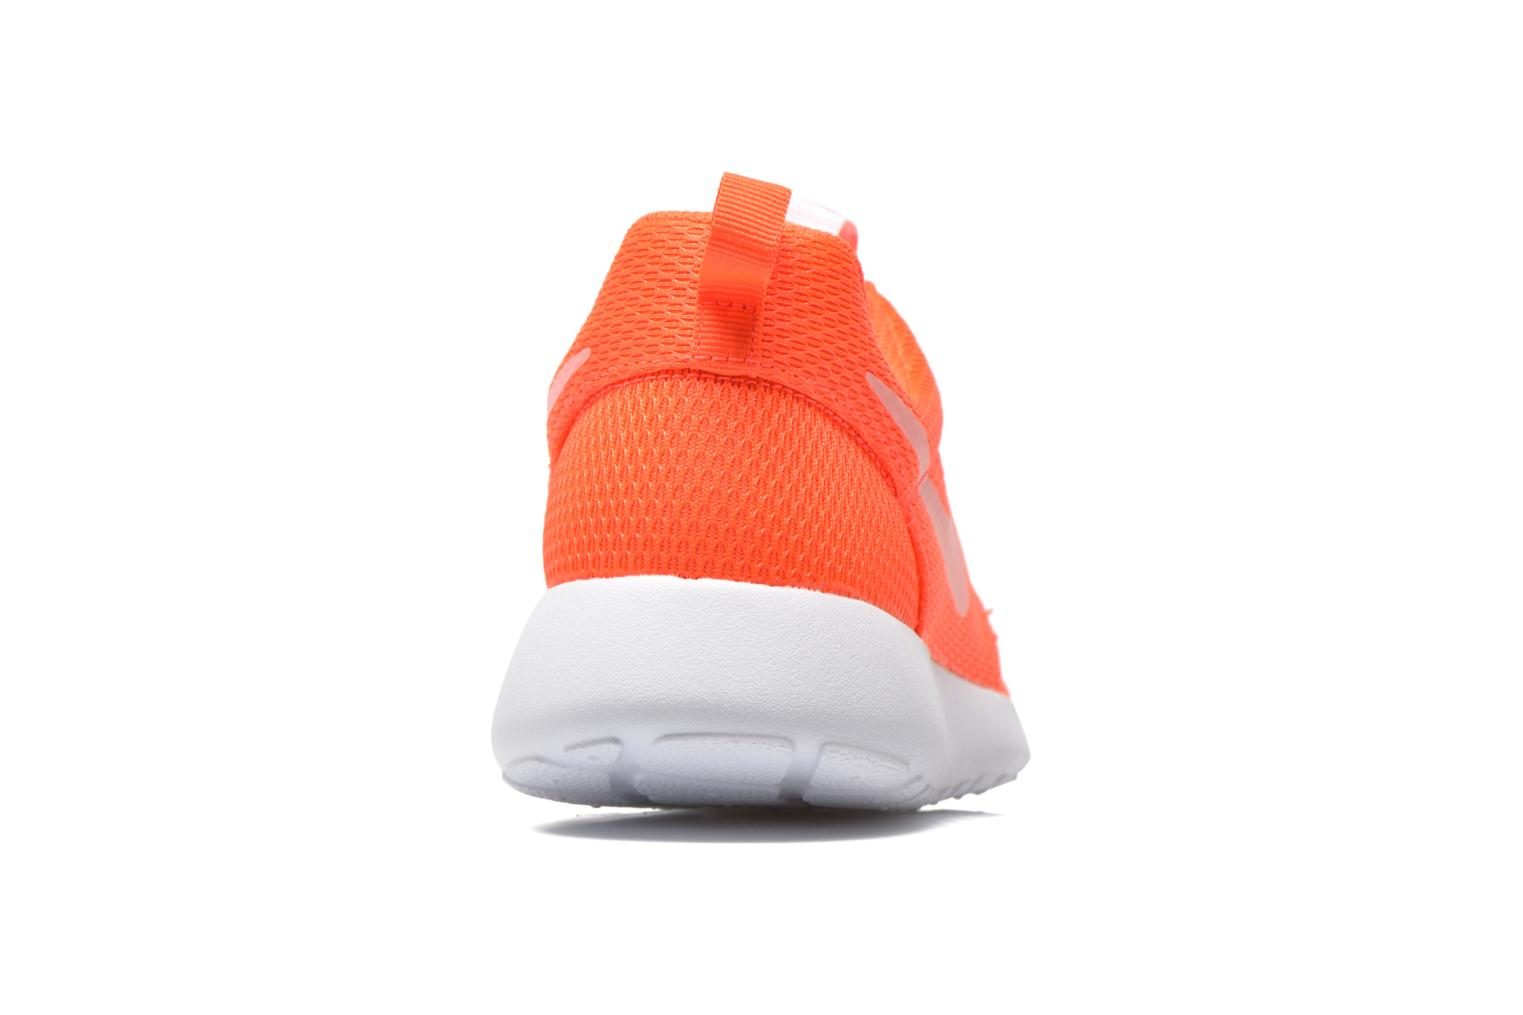 Baskets Nike Wmns Nike Roshe One Orange vue droite